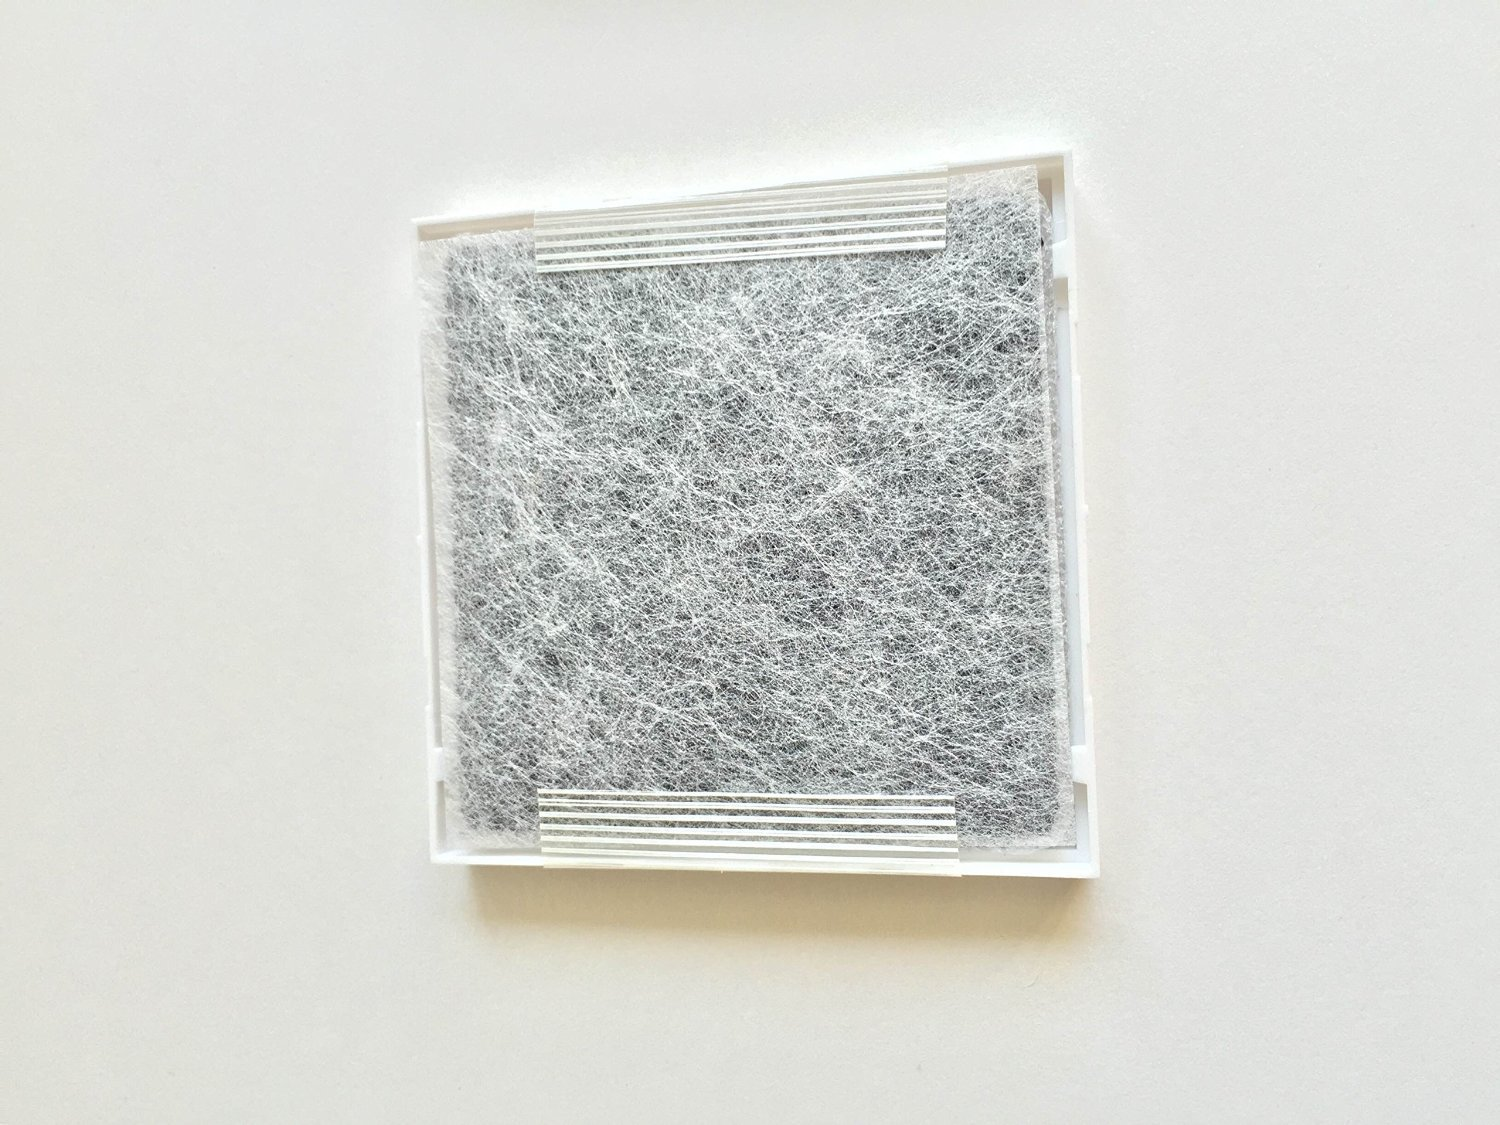 Nispira Air Filter Replacement Compatible With LG LT120F Kenmore Elite 469918 Refrigerator ADQ73214402, ADQ73214404-6 packs